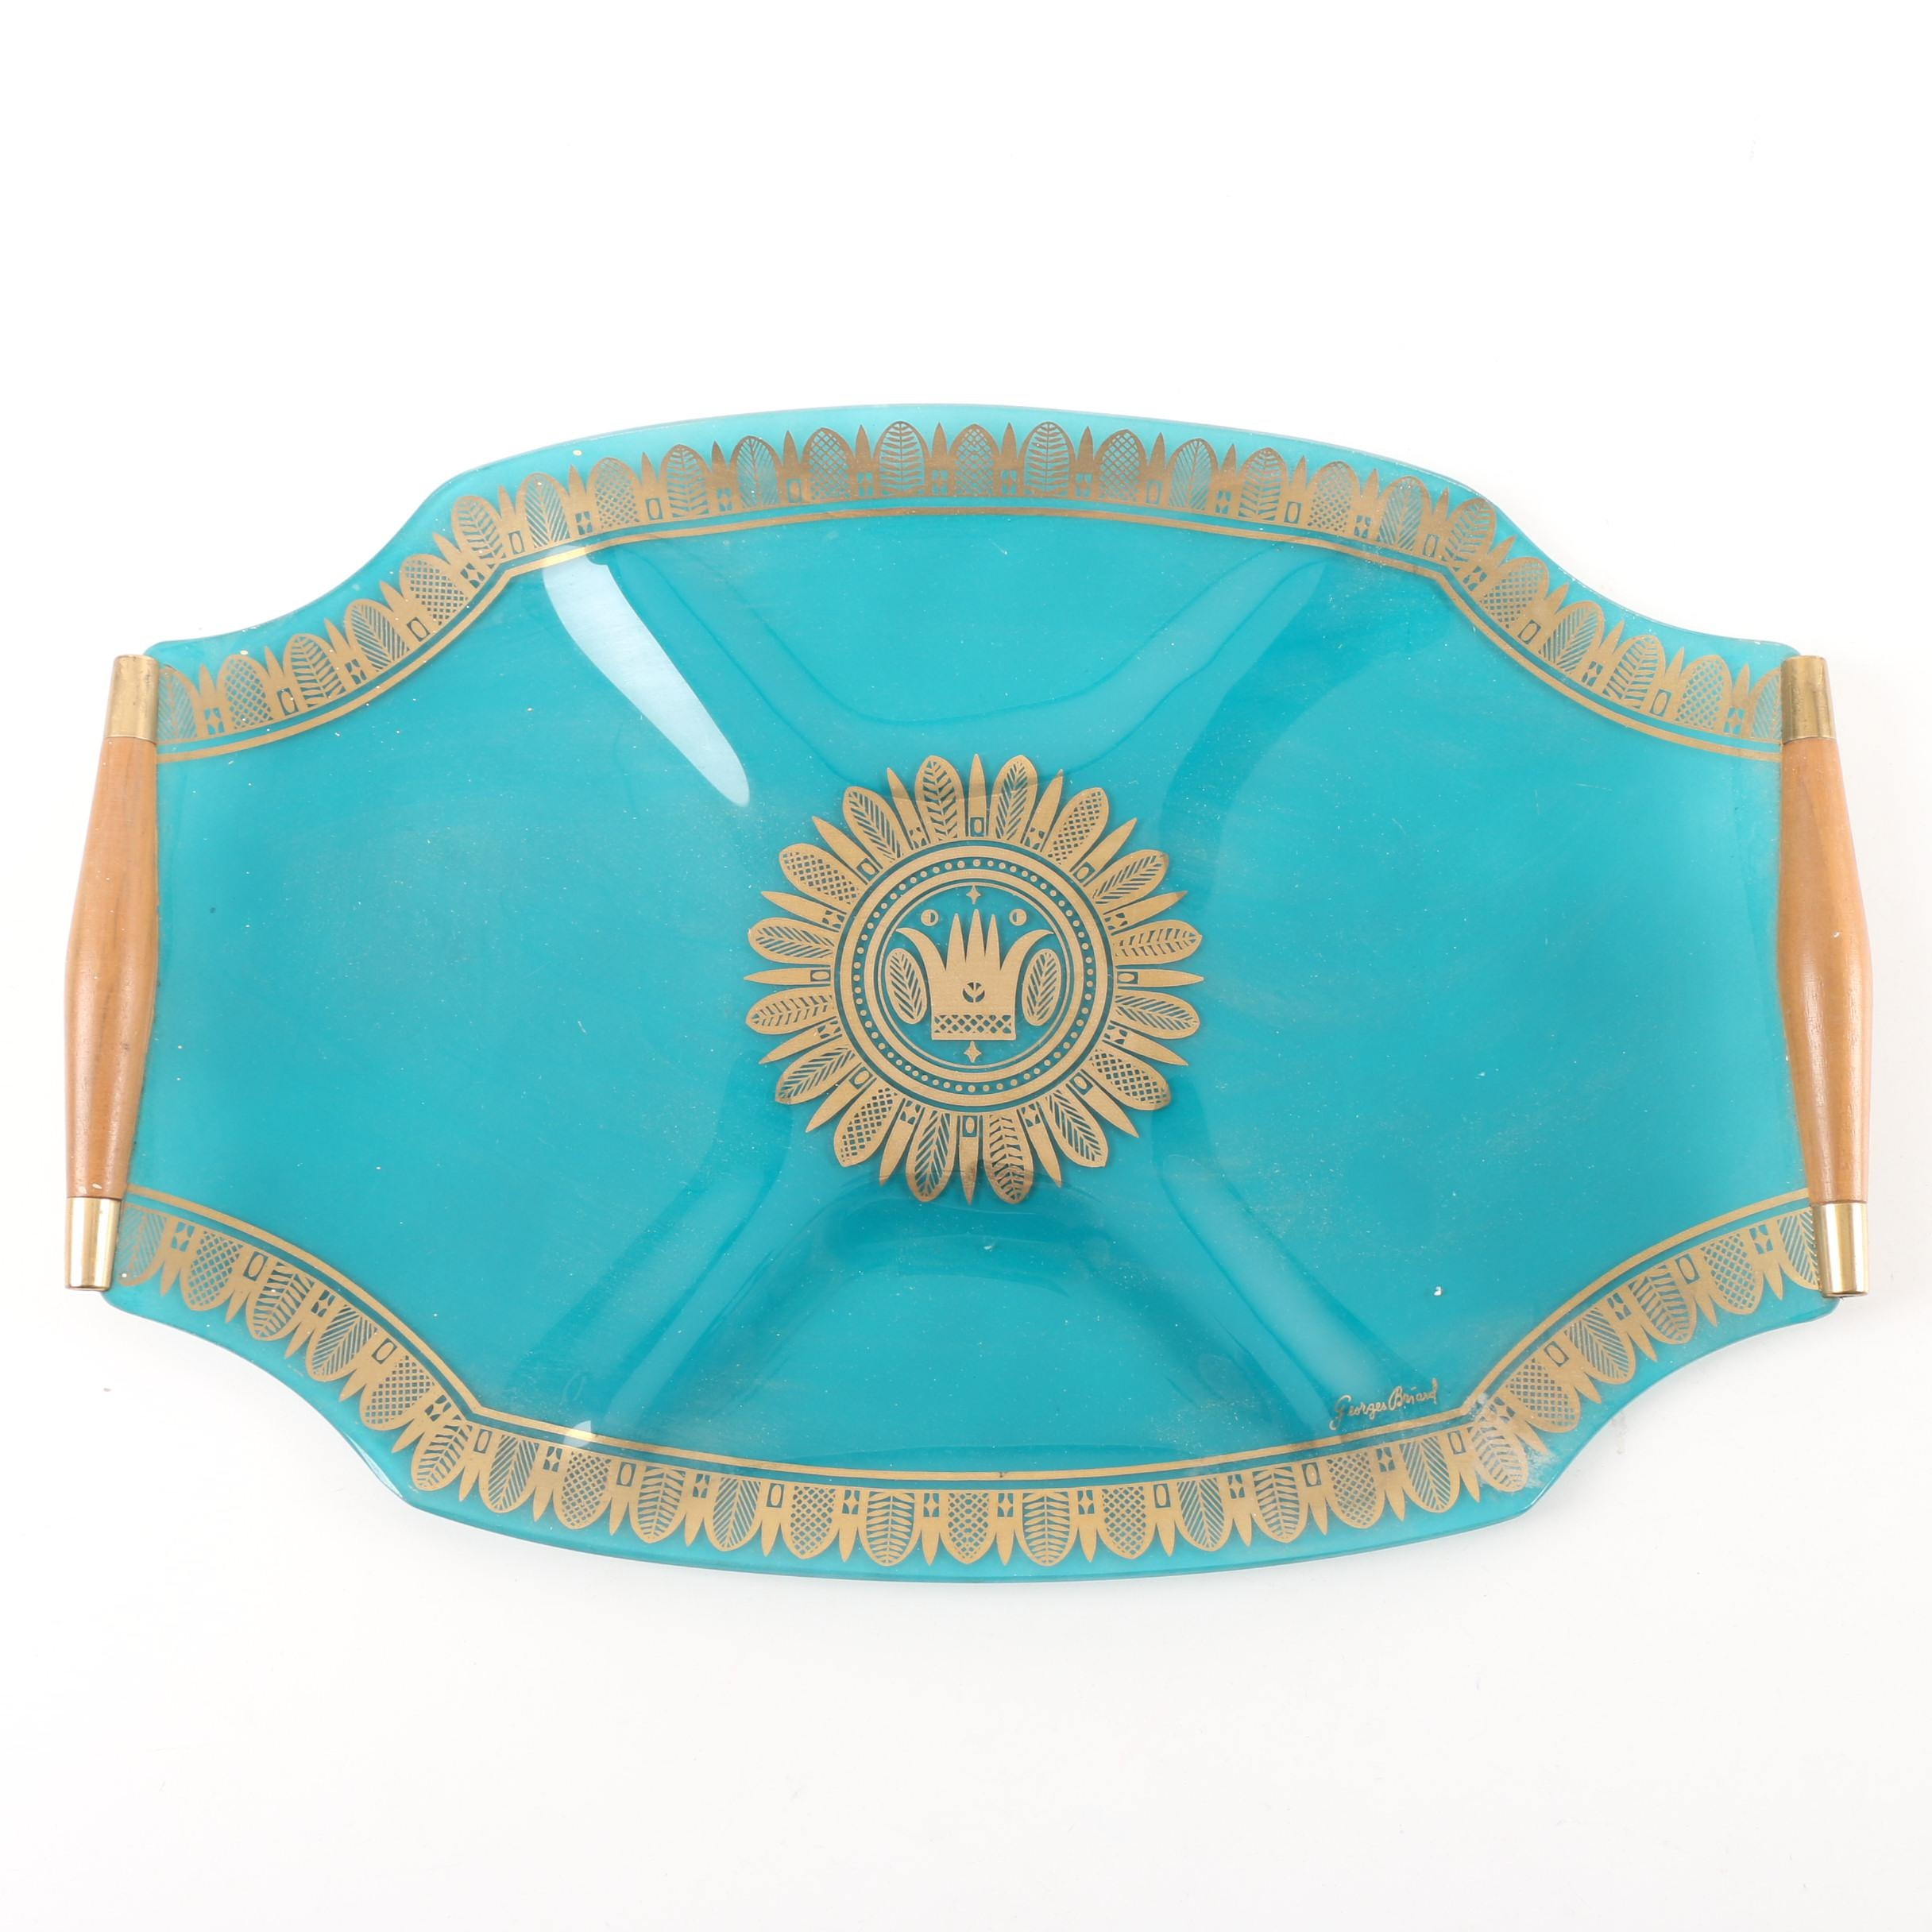 Mid Century Modern Georges Briard Teal Glass Serving Tray